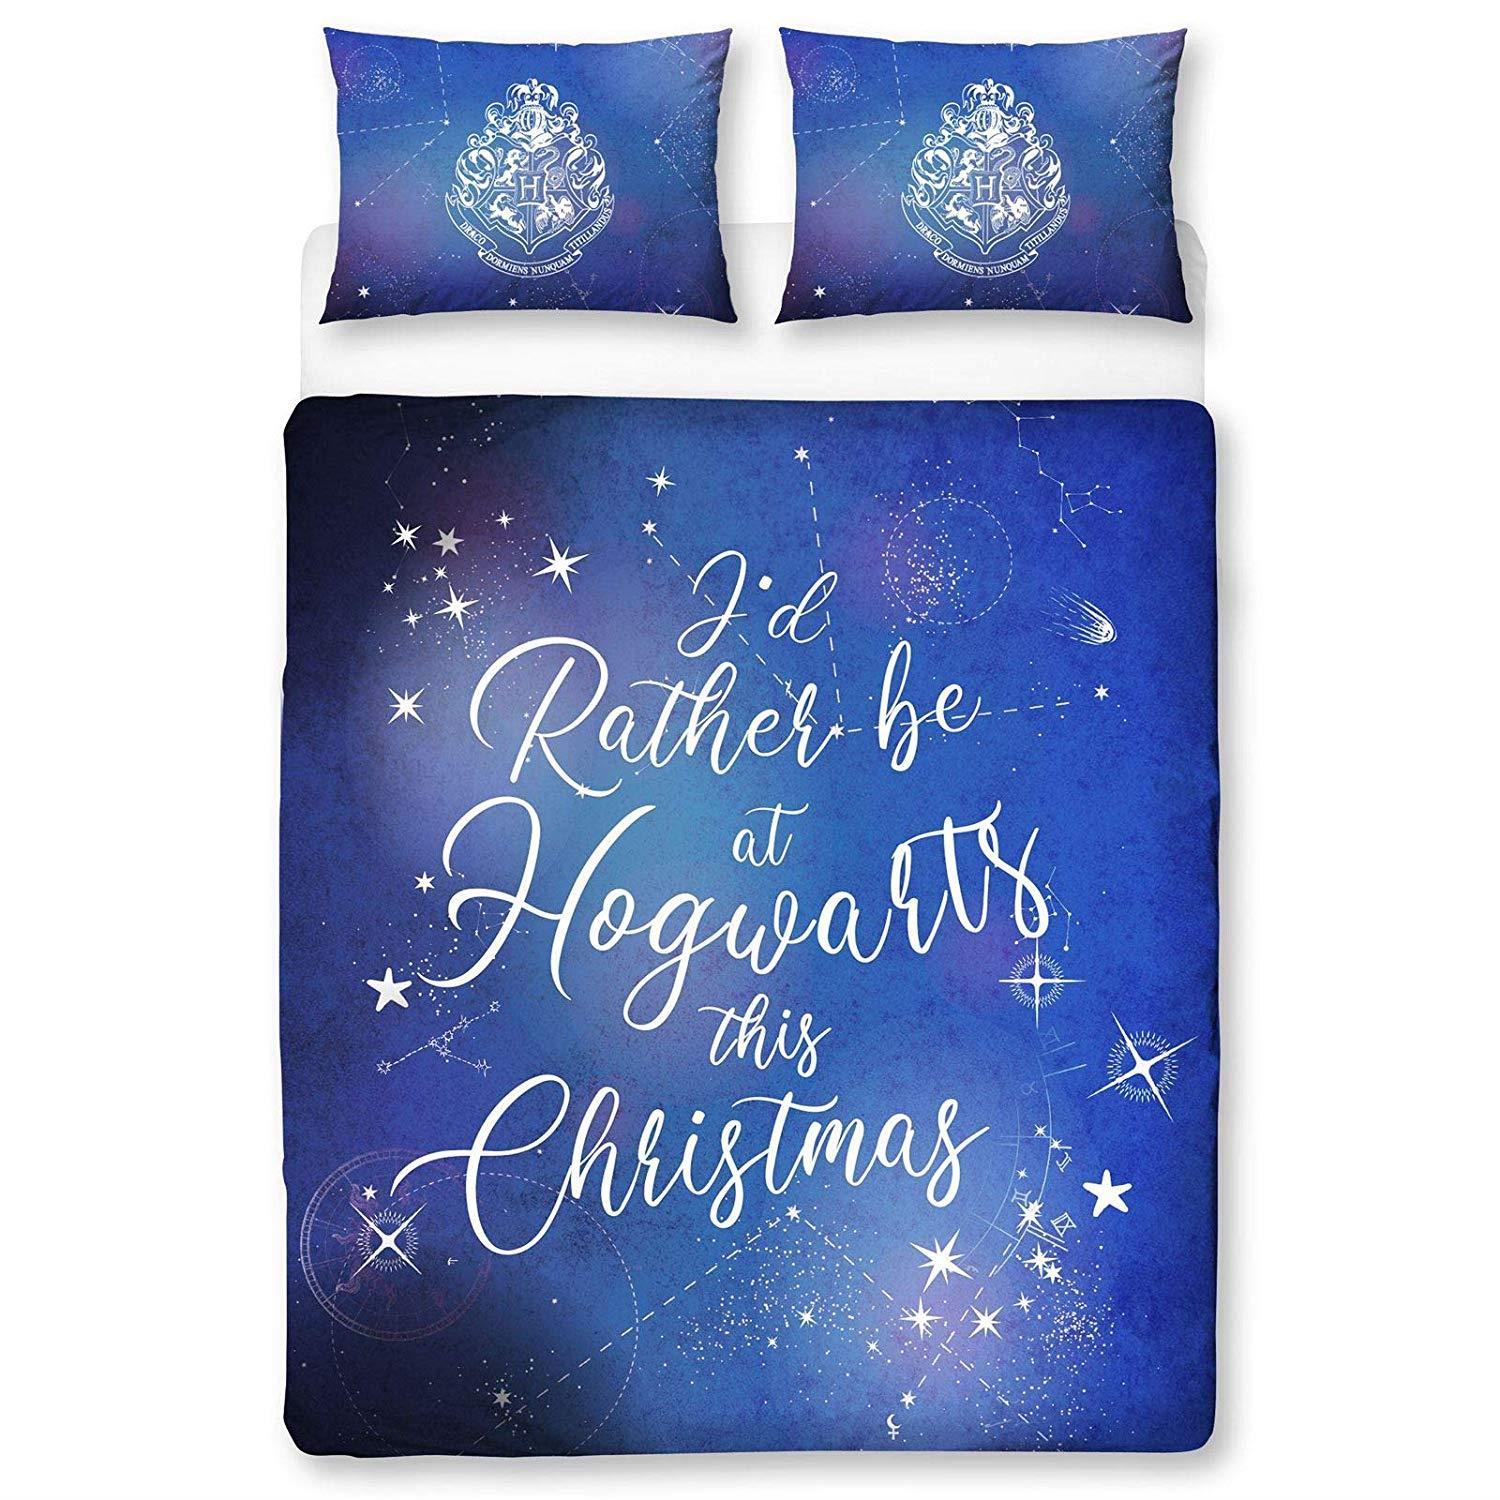 Official-Harry-Potter-Licensed-Duvet-Covers-Single-Double-Muggles-Hogwarts-Charm thumbnail 13